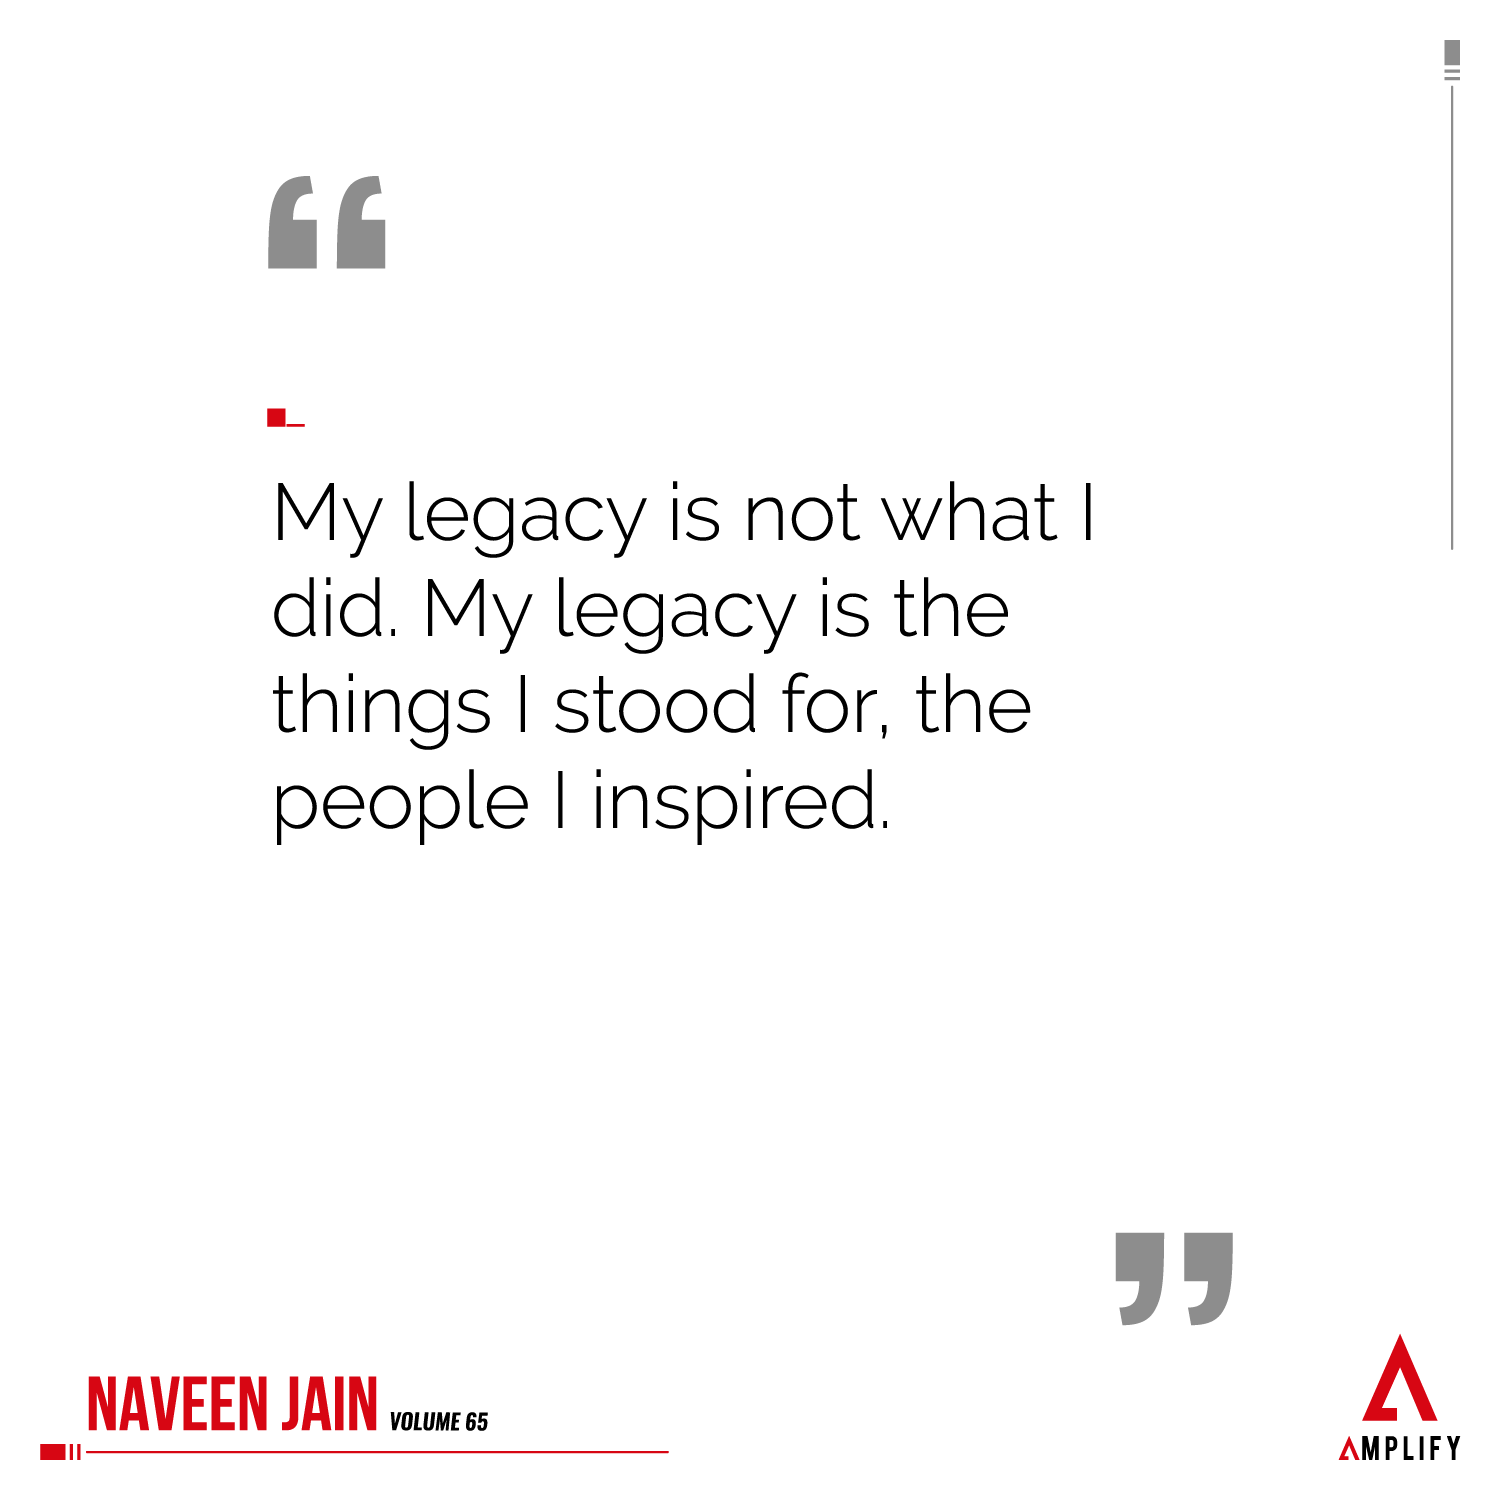 Quote: My legacy is not what I did. My legacy is the things I stood for, the people I inspired.